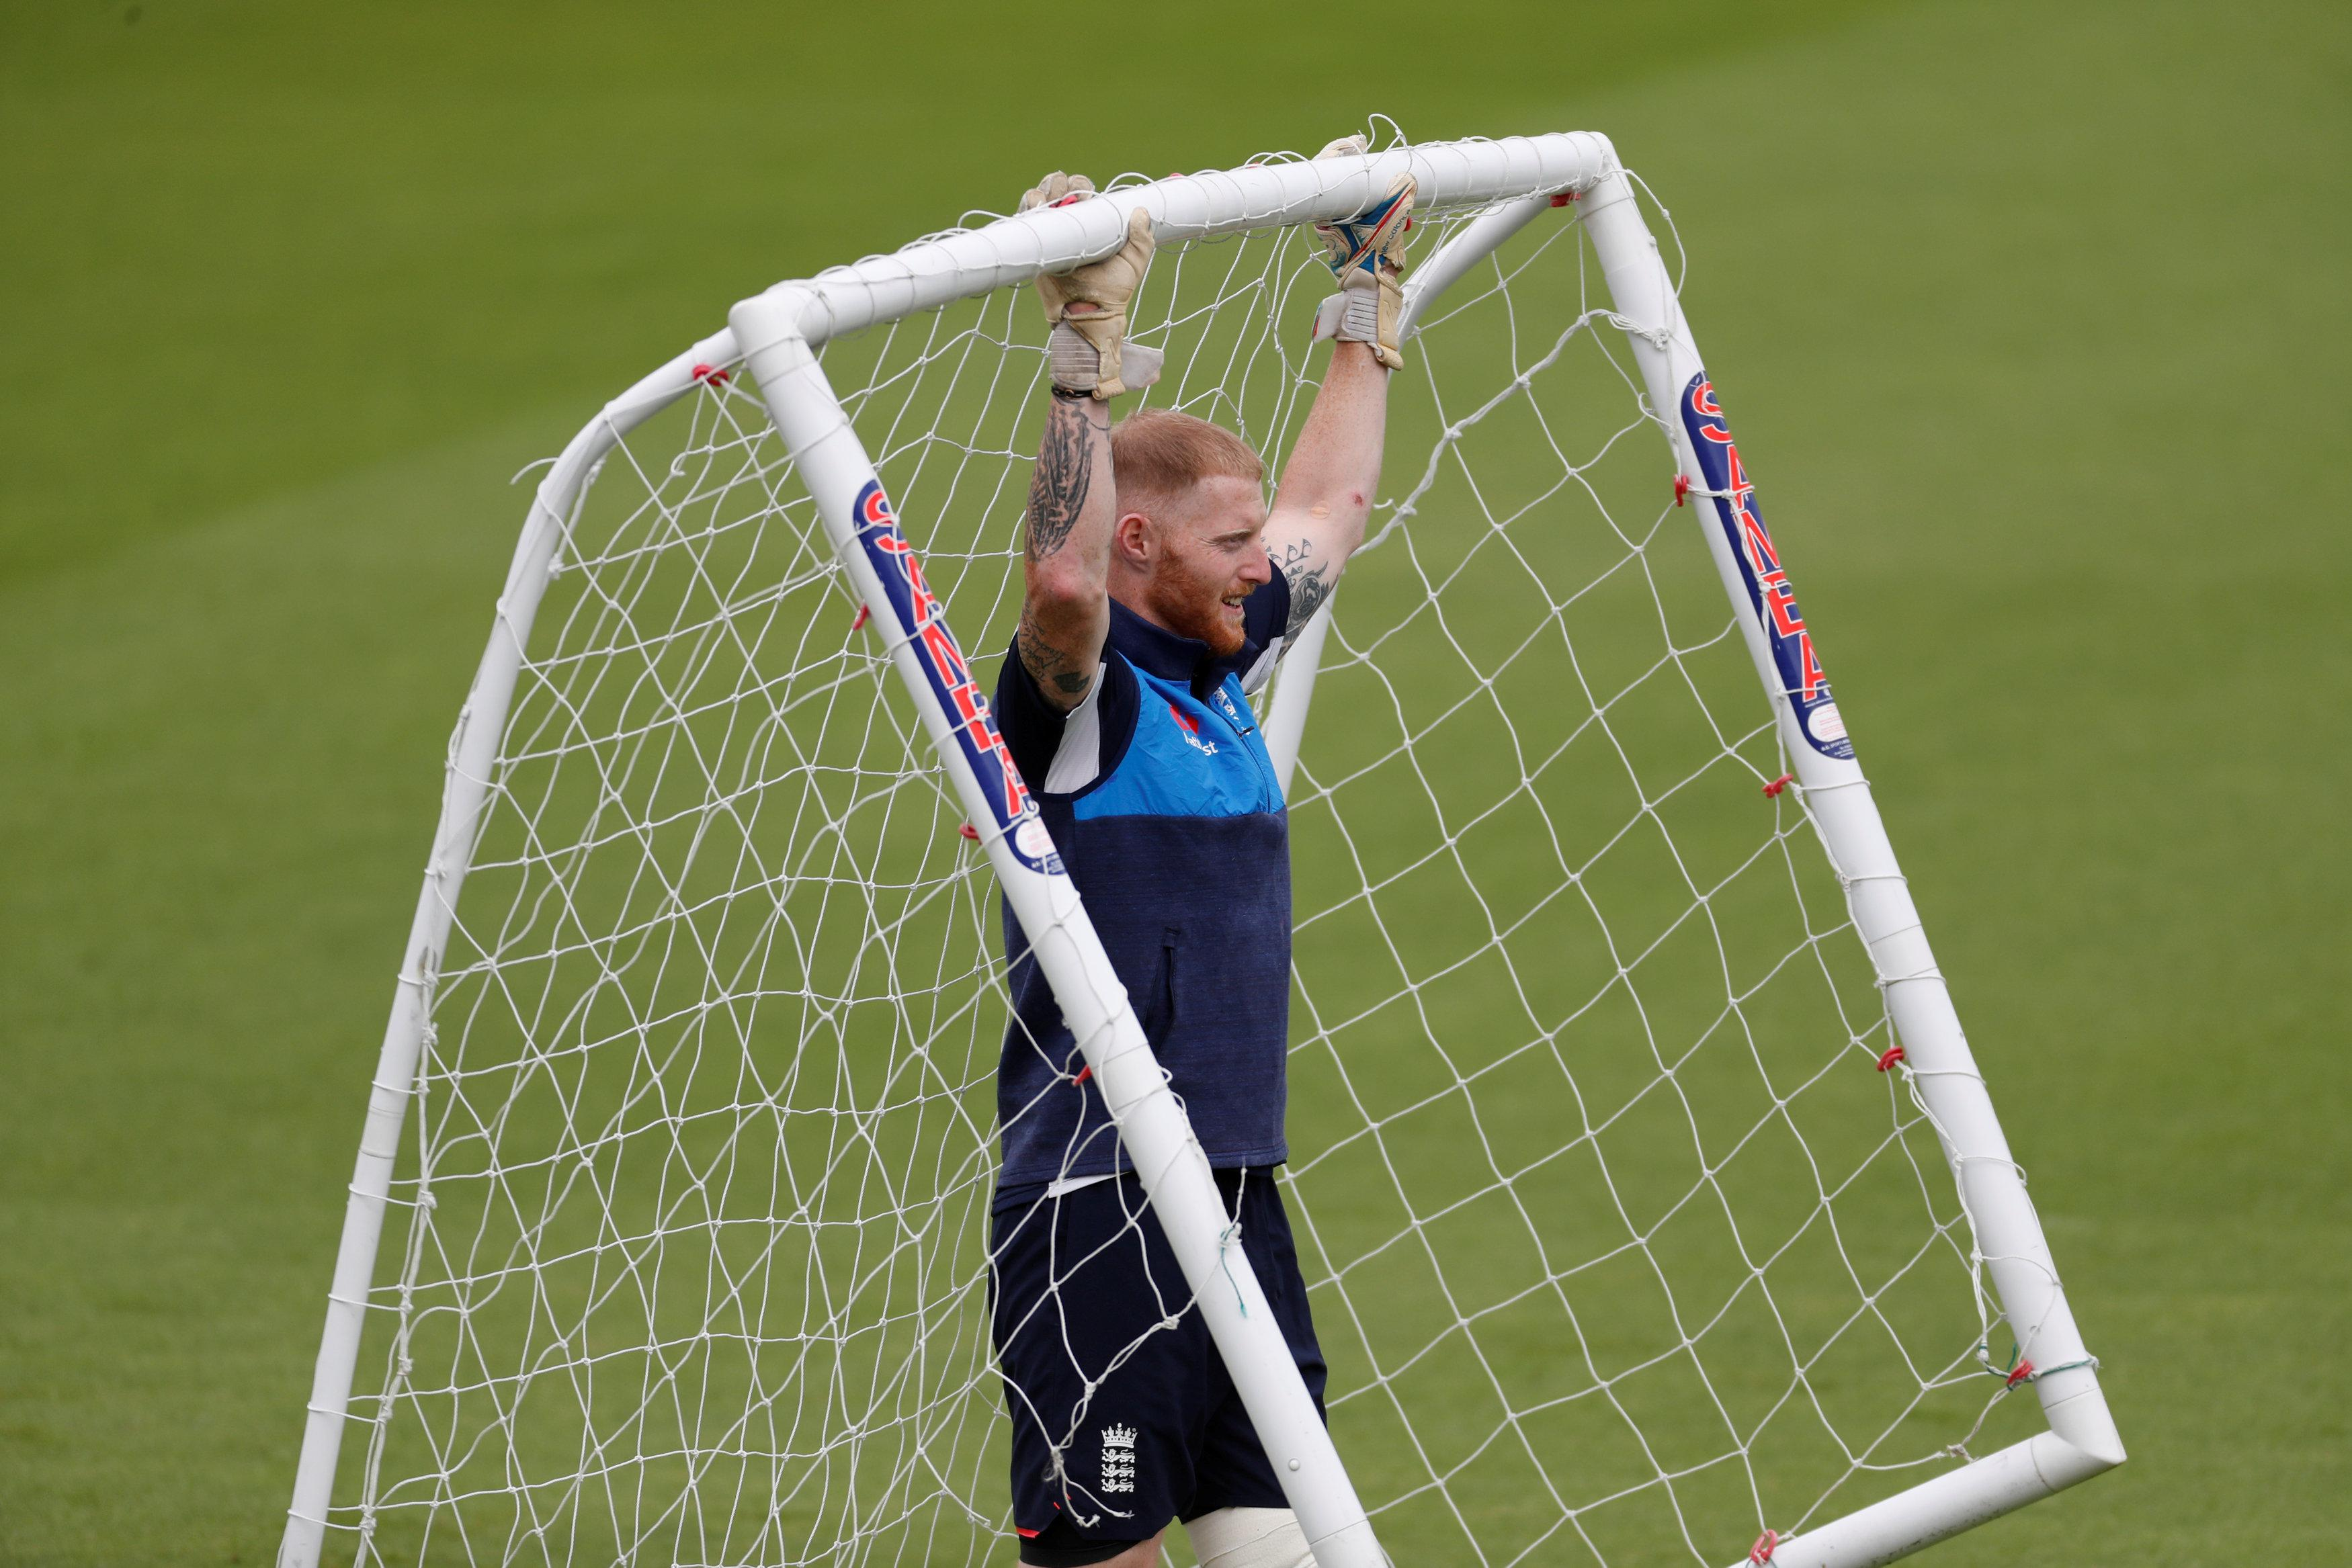 Like Bairstow, Ben Stokes is set to be passed fit to play in Southampton